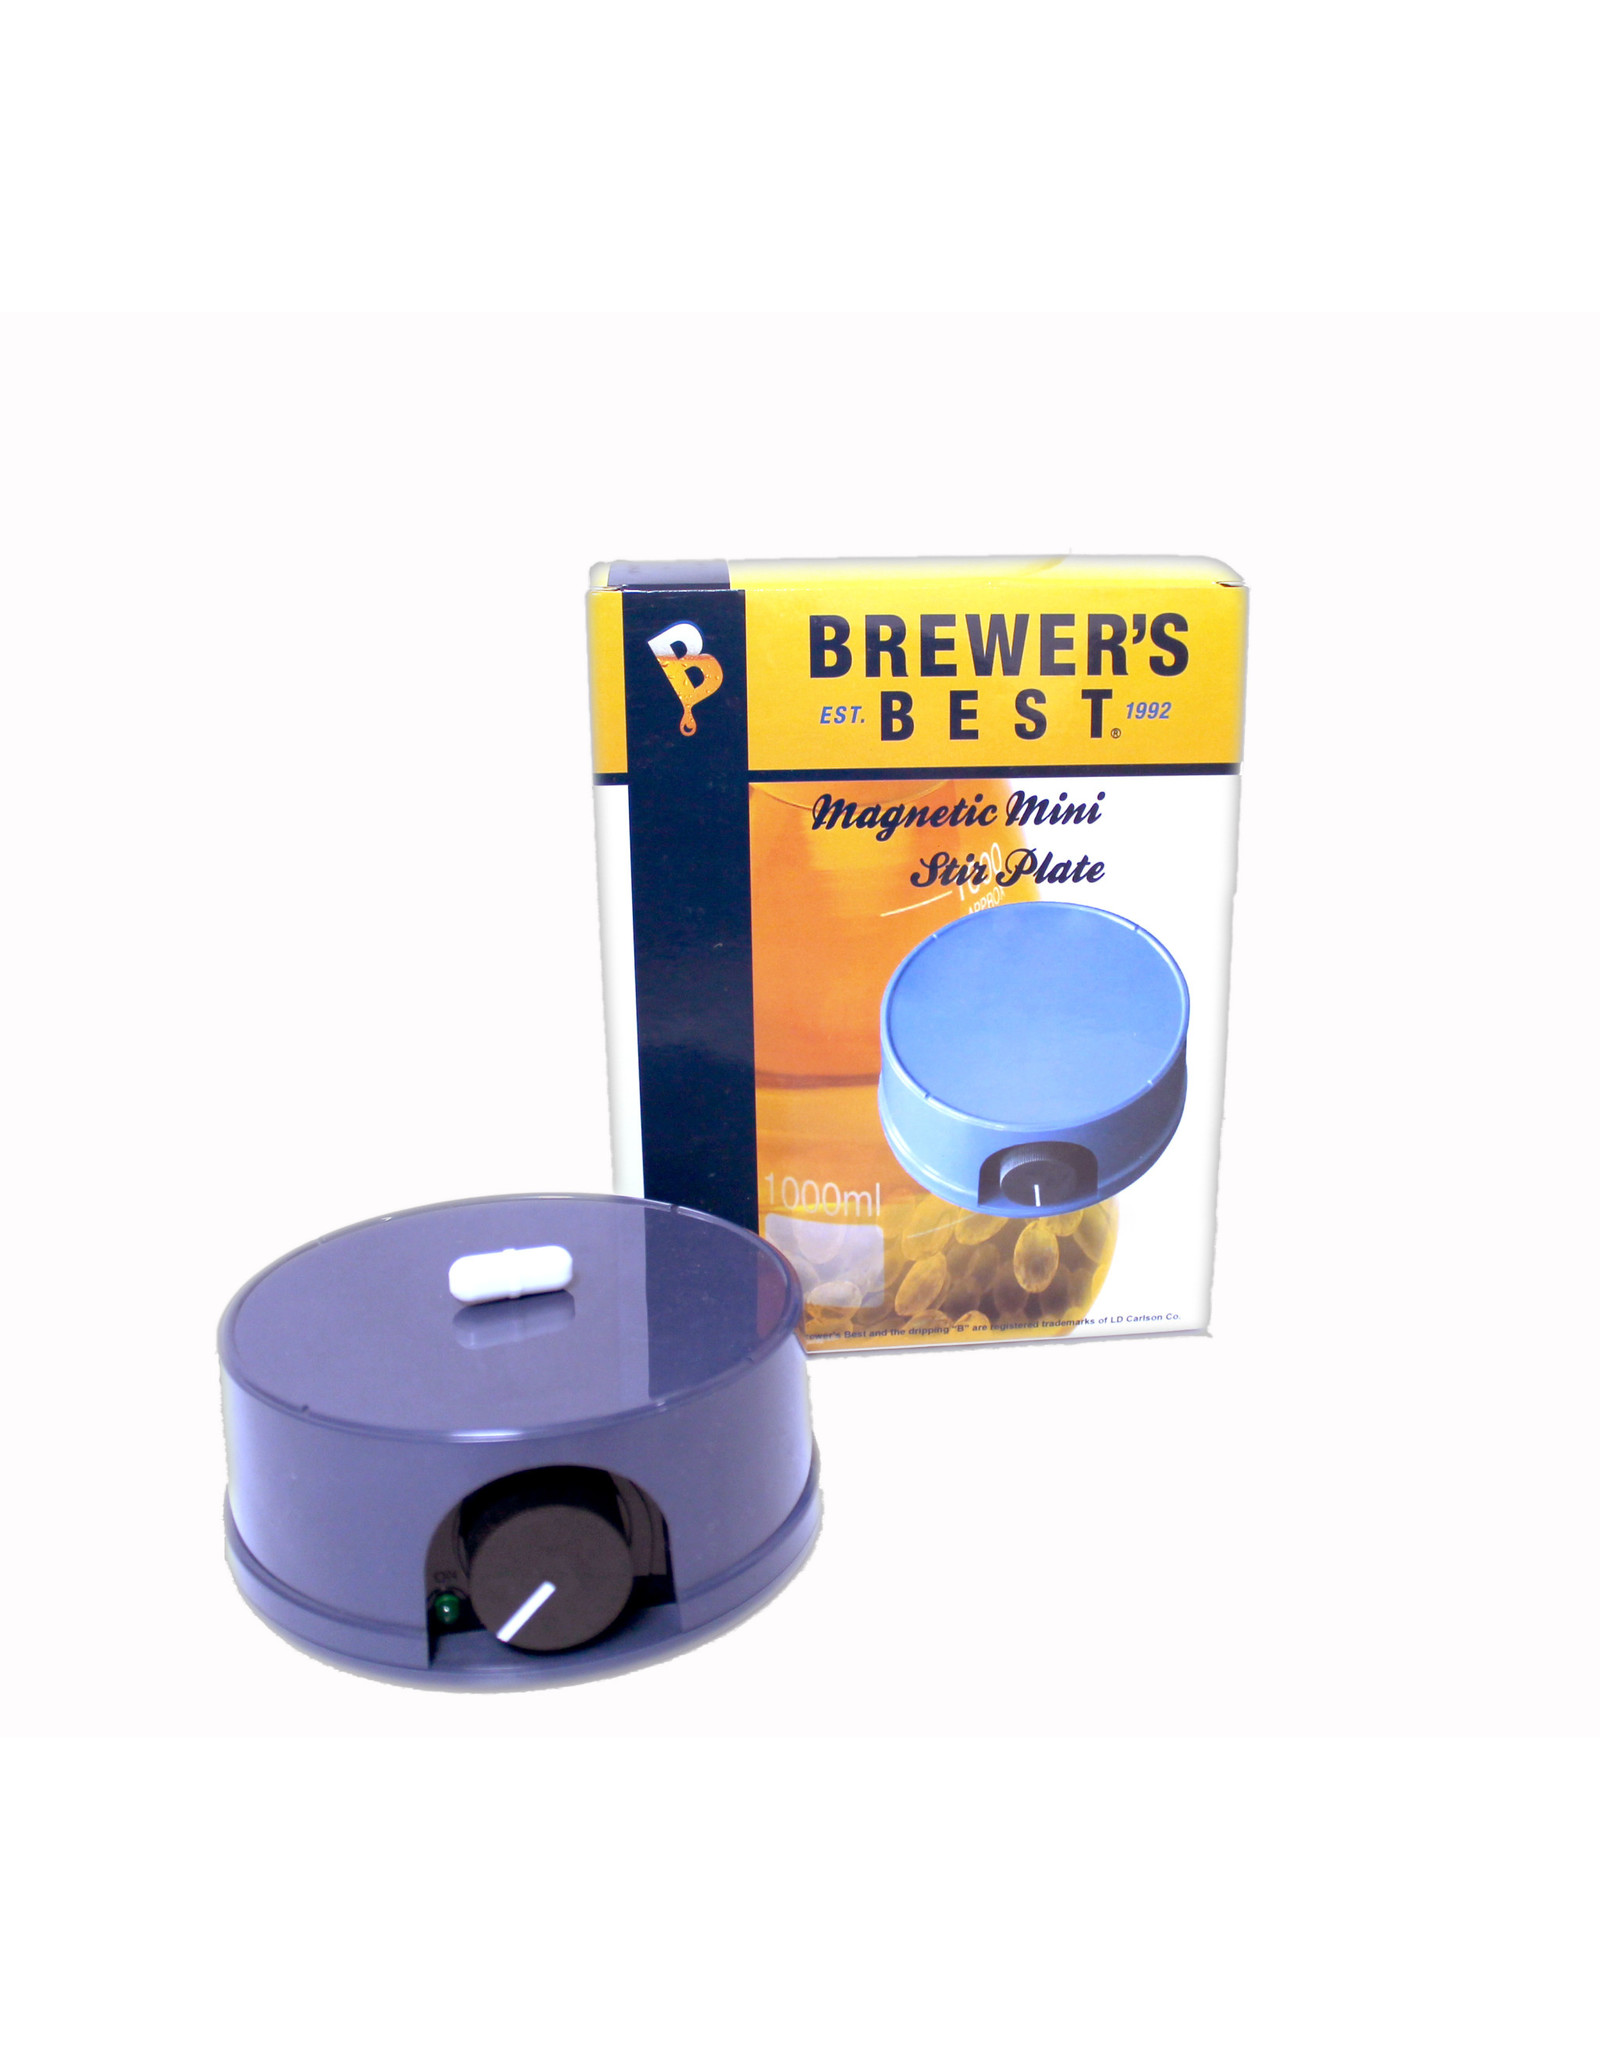 Brewer's Best Magnetic Mini Stir Plate